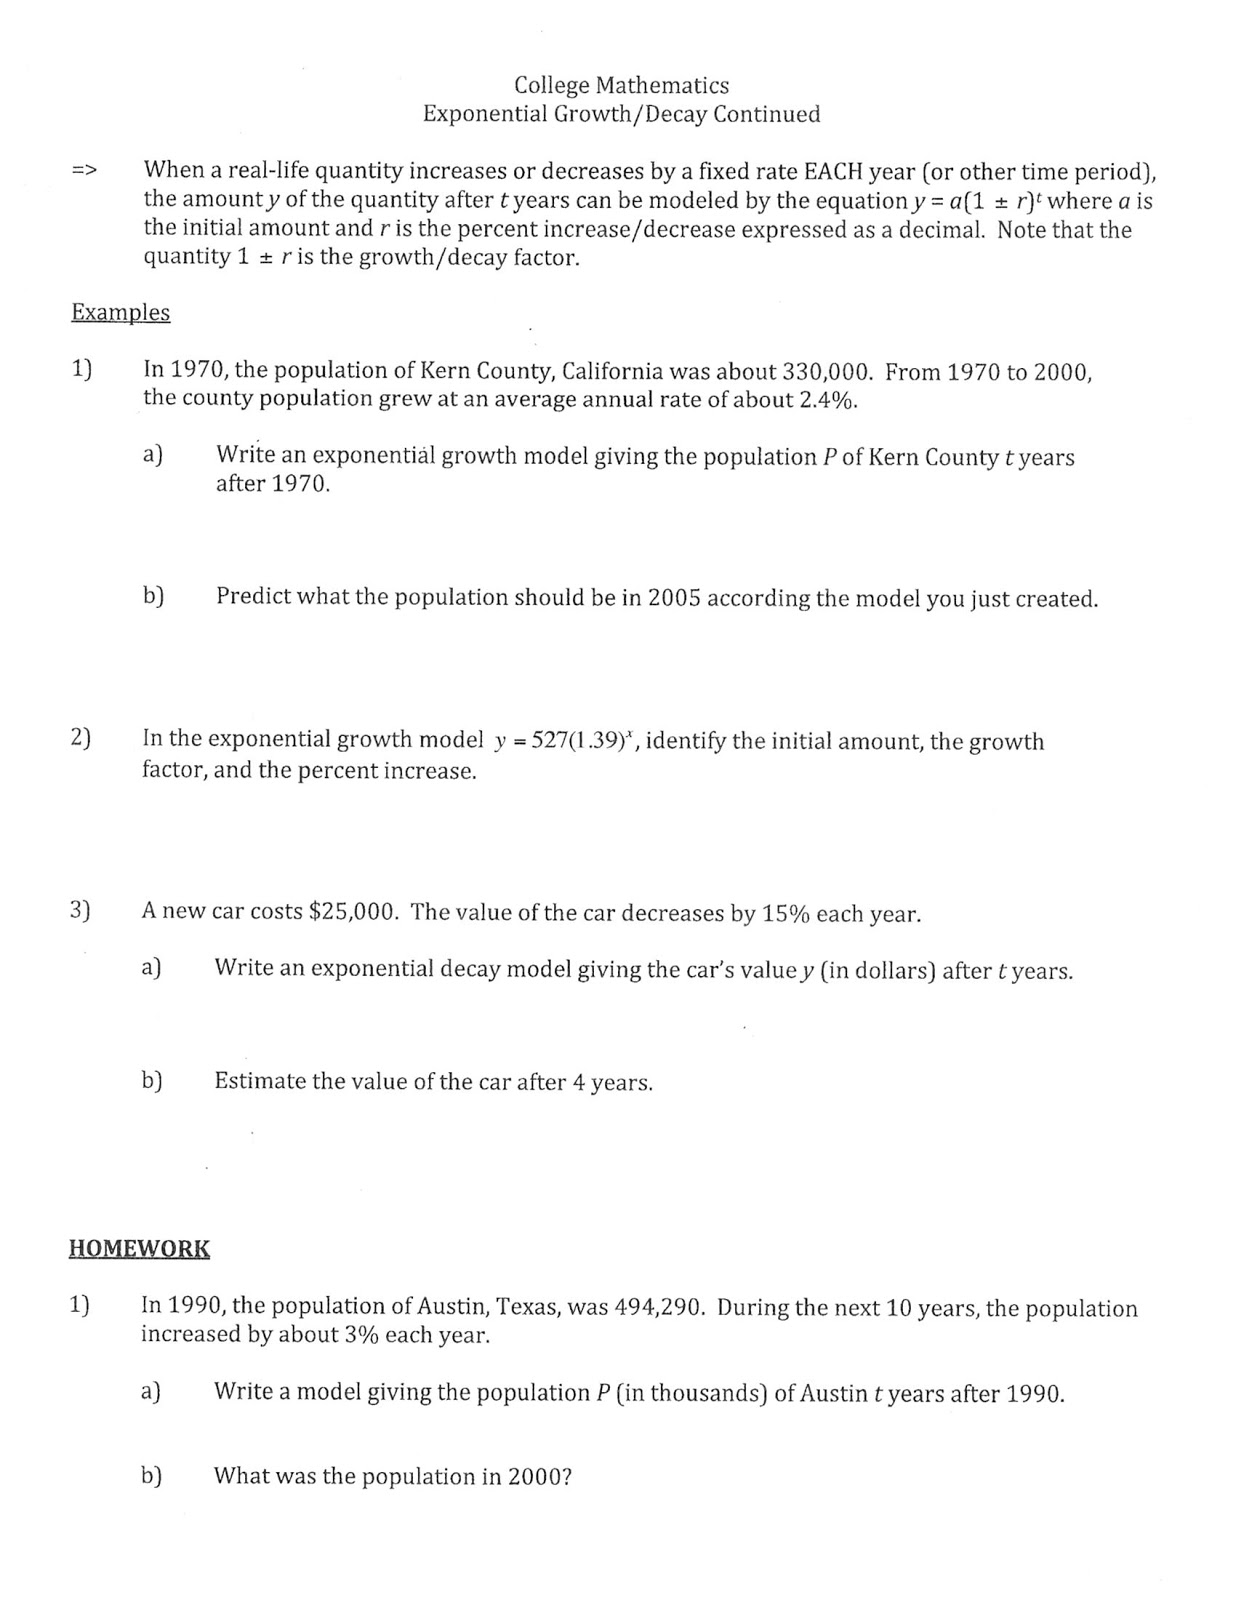 Worksheet Exponential Growth And Decay Worksheet mr suominens math homepage february 2013 answers to the graphing exponential decay worksheet and word problems given out today covering using growth decay